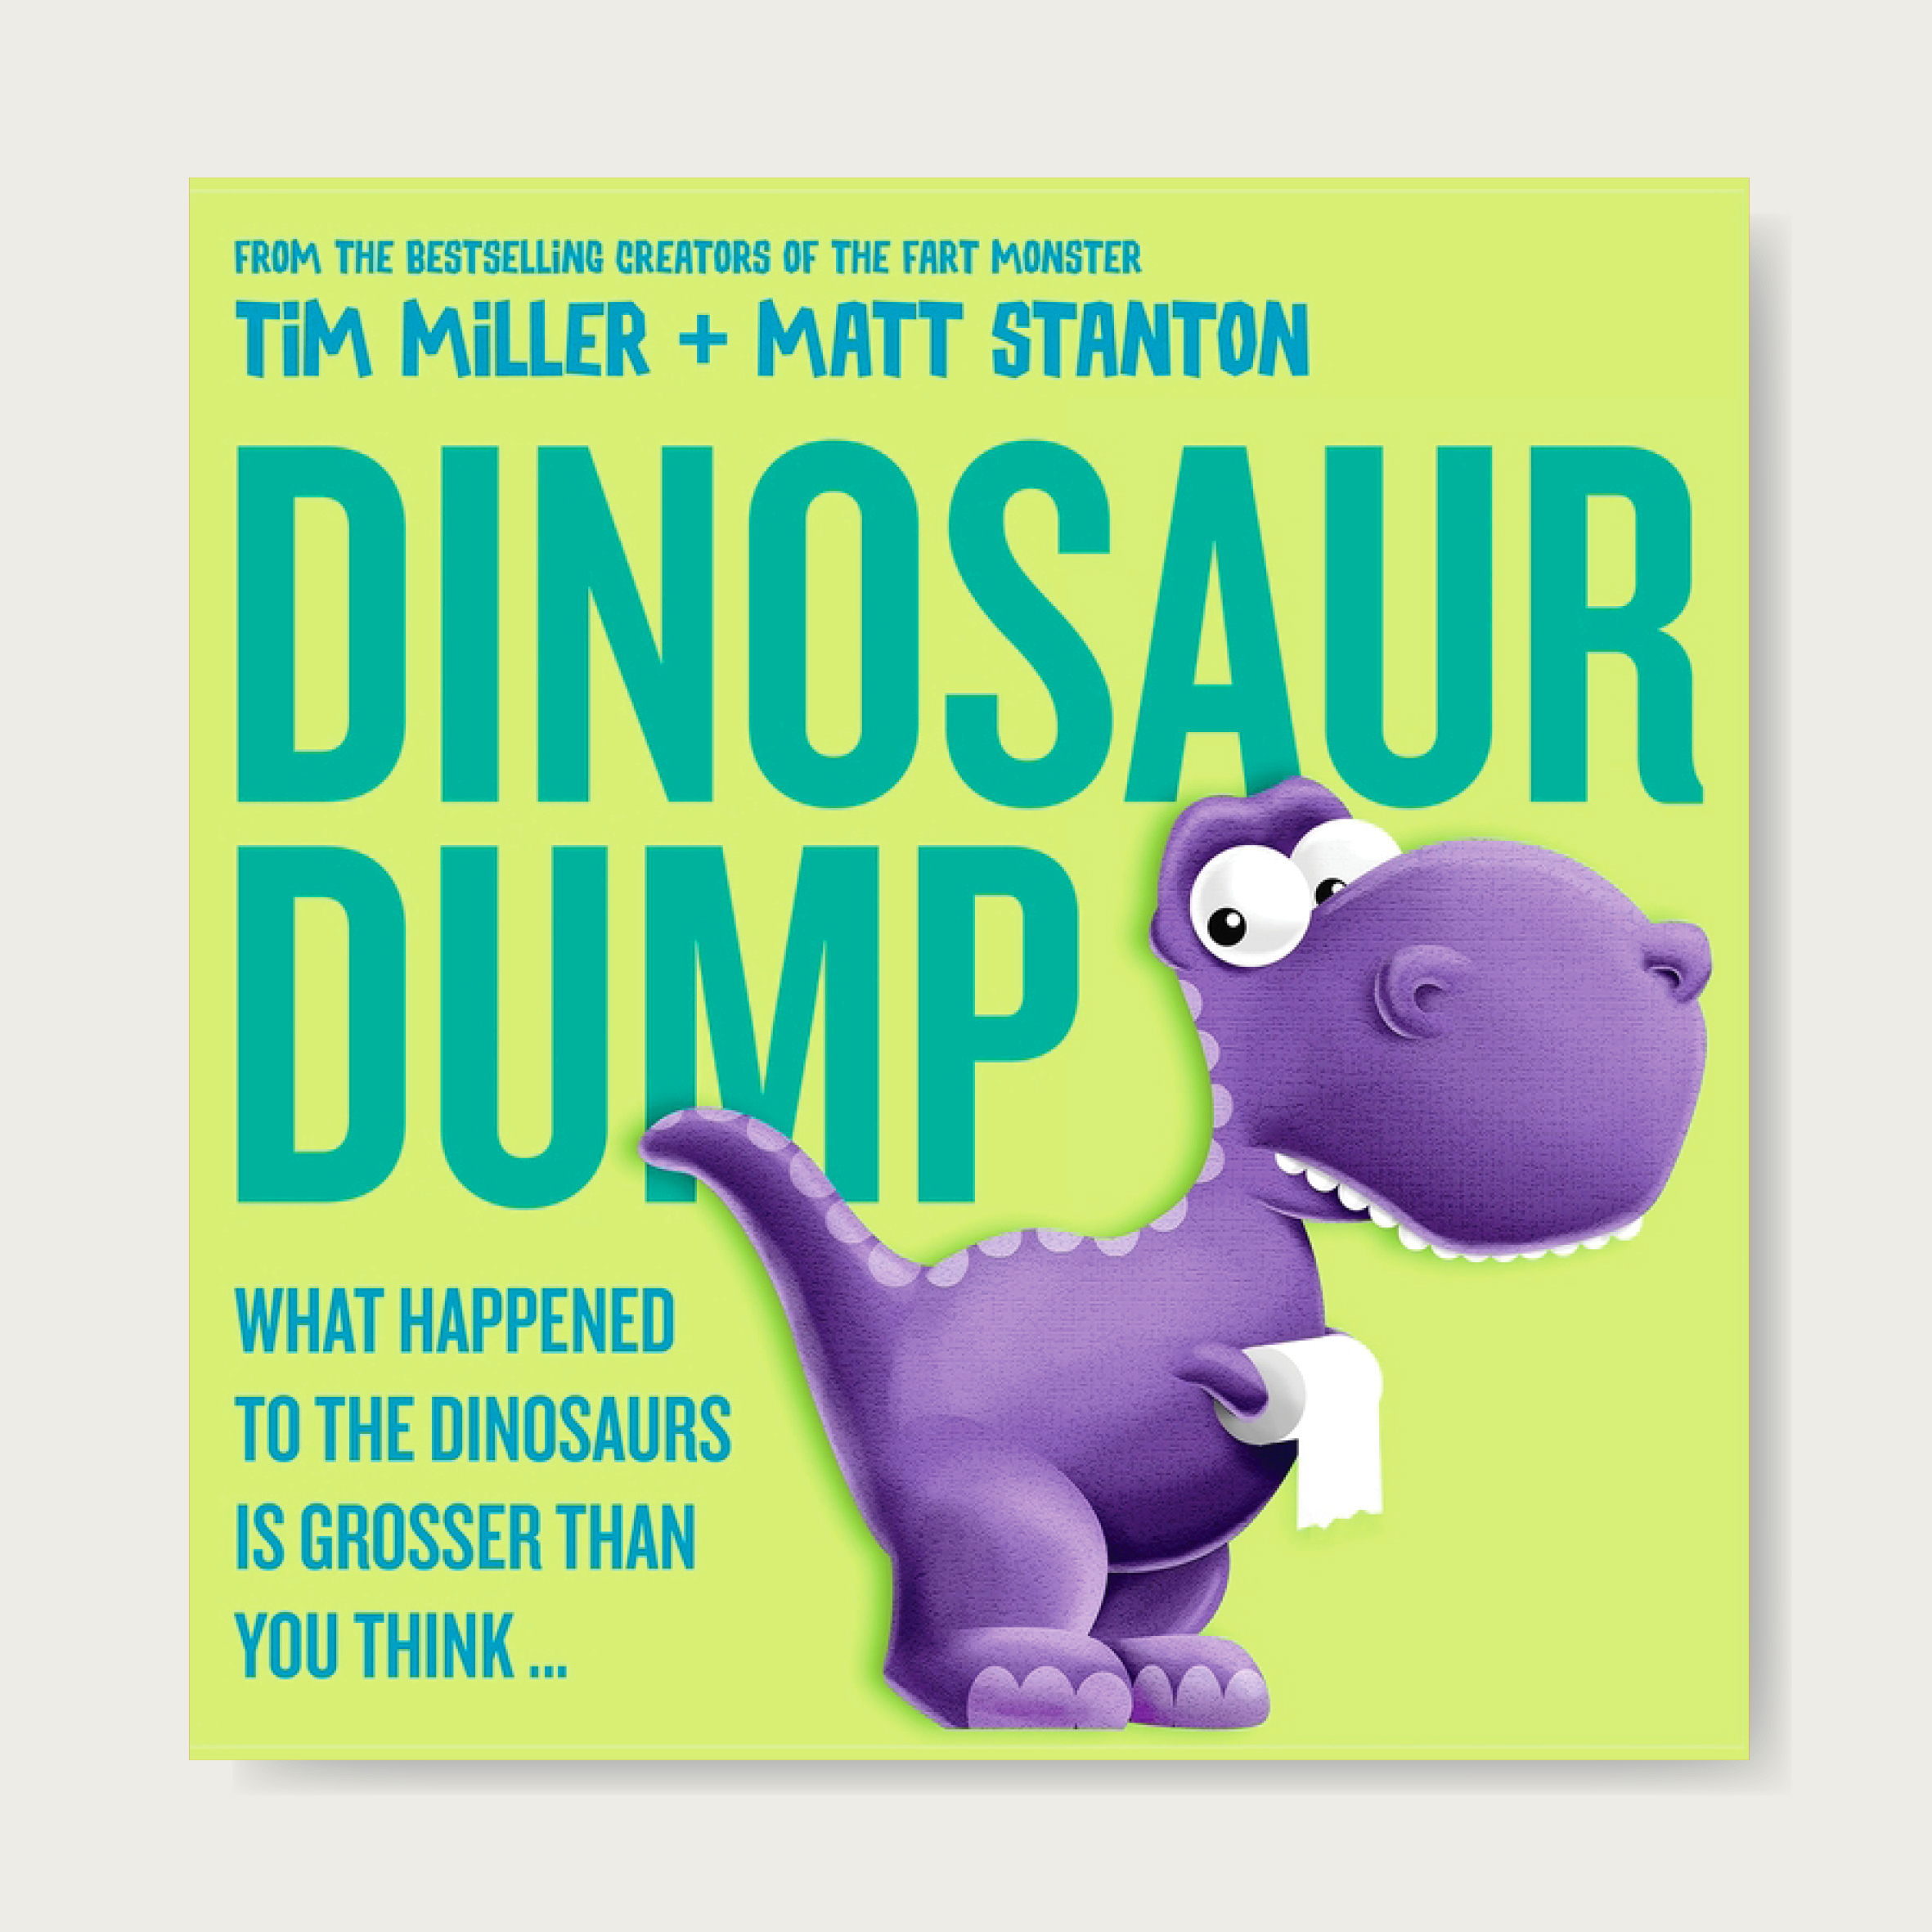 The new bestseller from the creators of the Fart Monster!    Straight from the prehistoric era comes an ex-STINK-tion story like no other! Life's hard when there's only one toilet and all the dinos need to go! There's a dumping pterodactyl, a plopping stegosaurus and a T. rex who can't reach to wipe ... But when it's finally Mike's turn, could one tiny bowel movement end in disaster? Ages: 2+